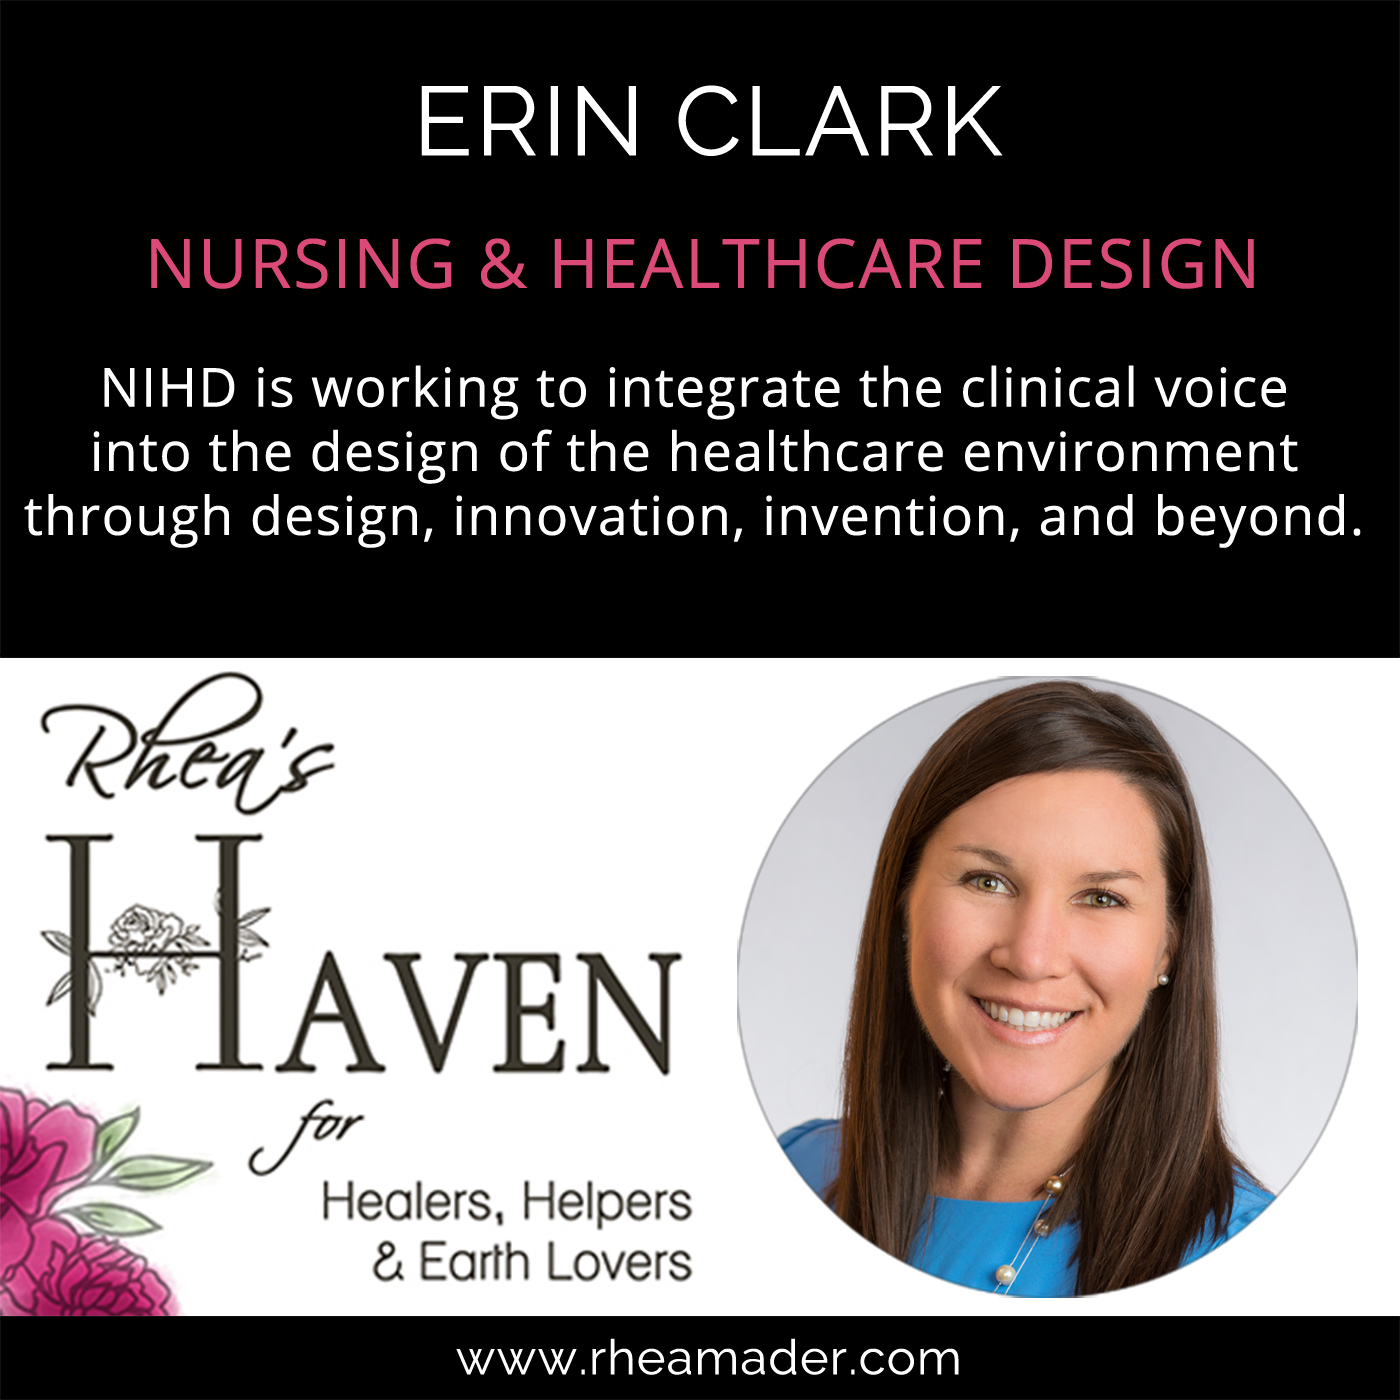 Erin Clark Marketing Communication Nursing Institute for Healthcare Design